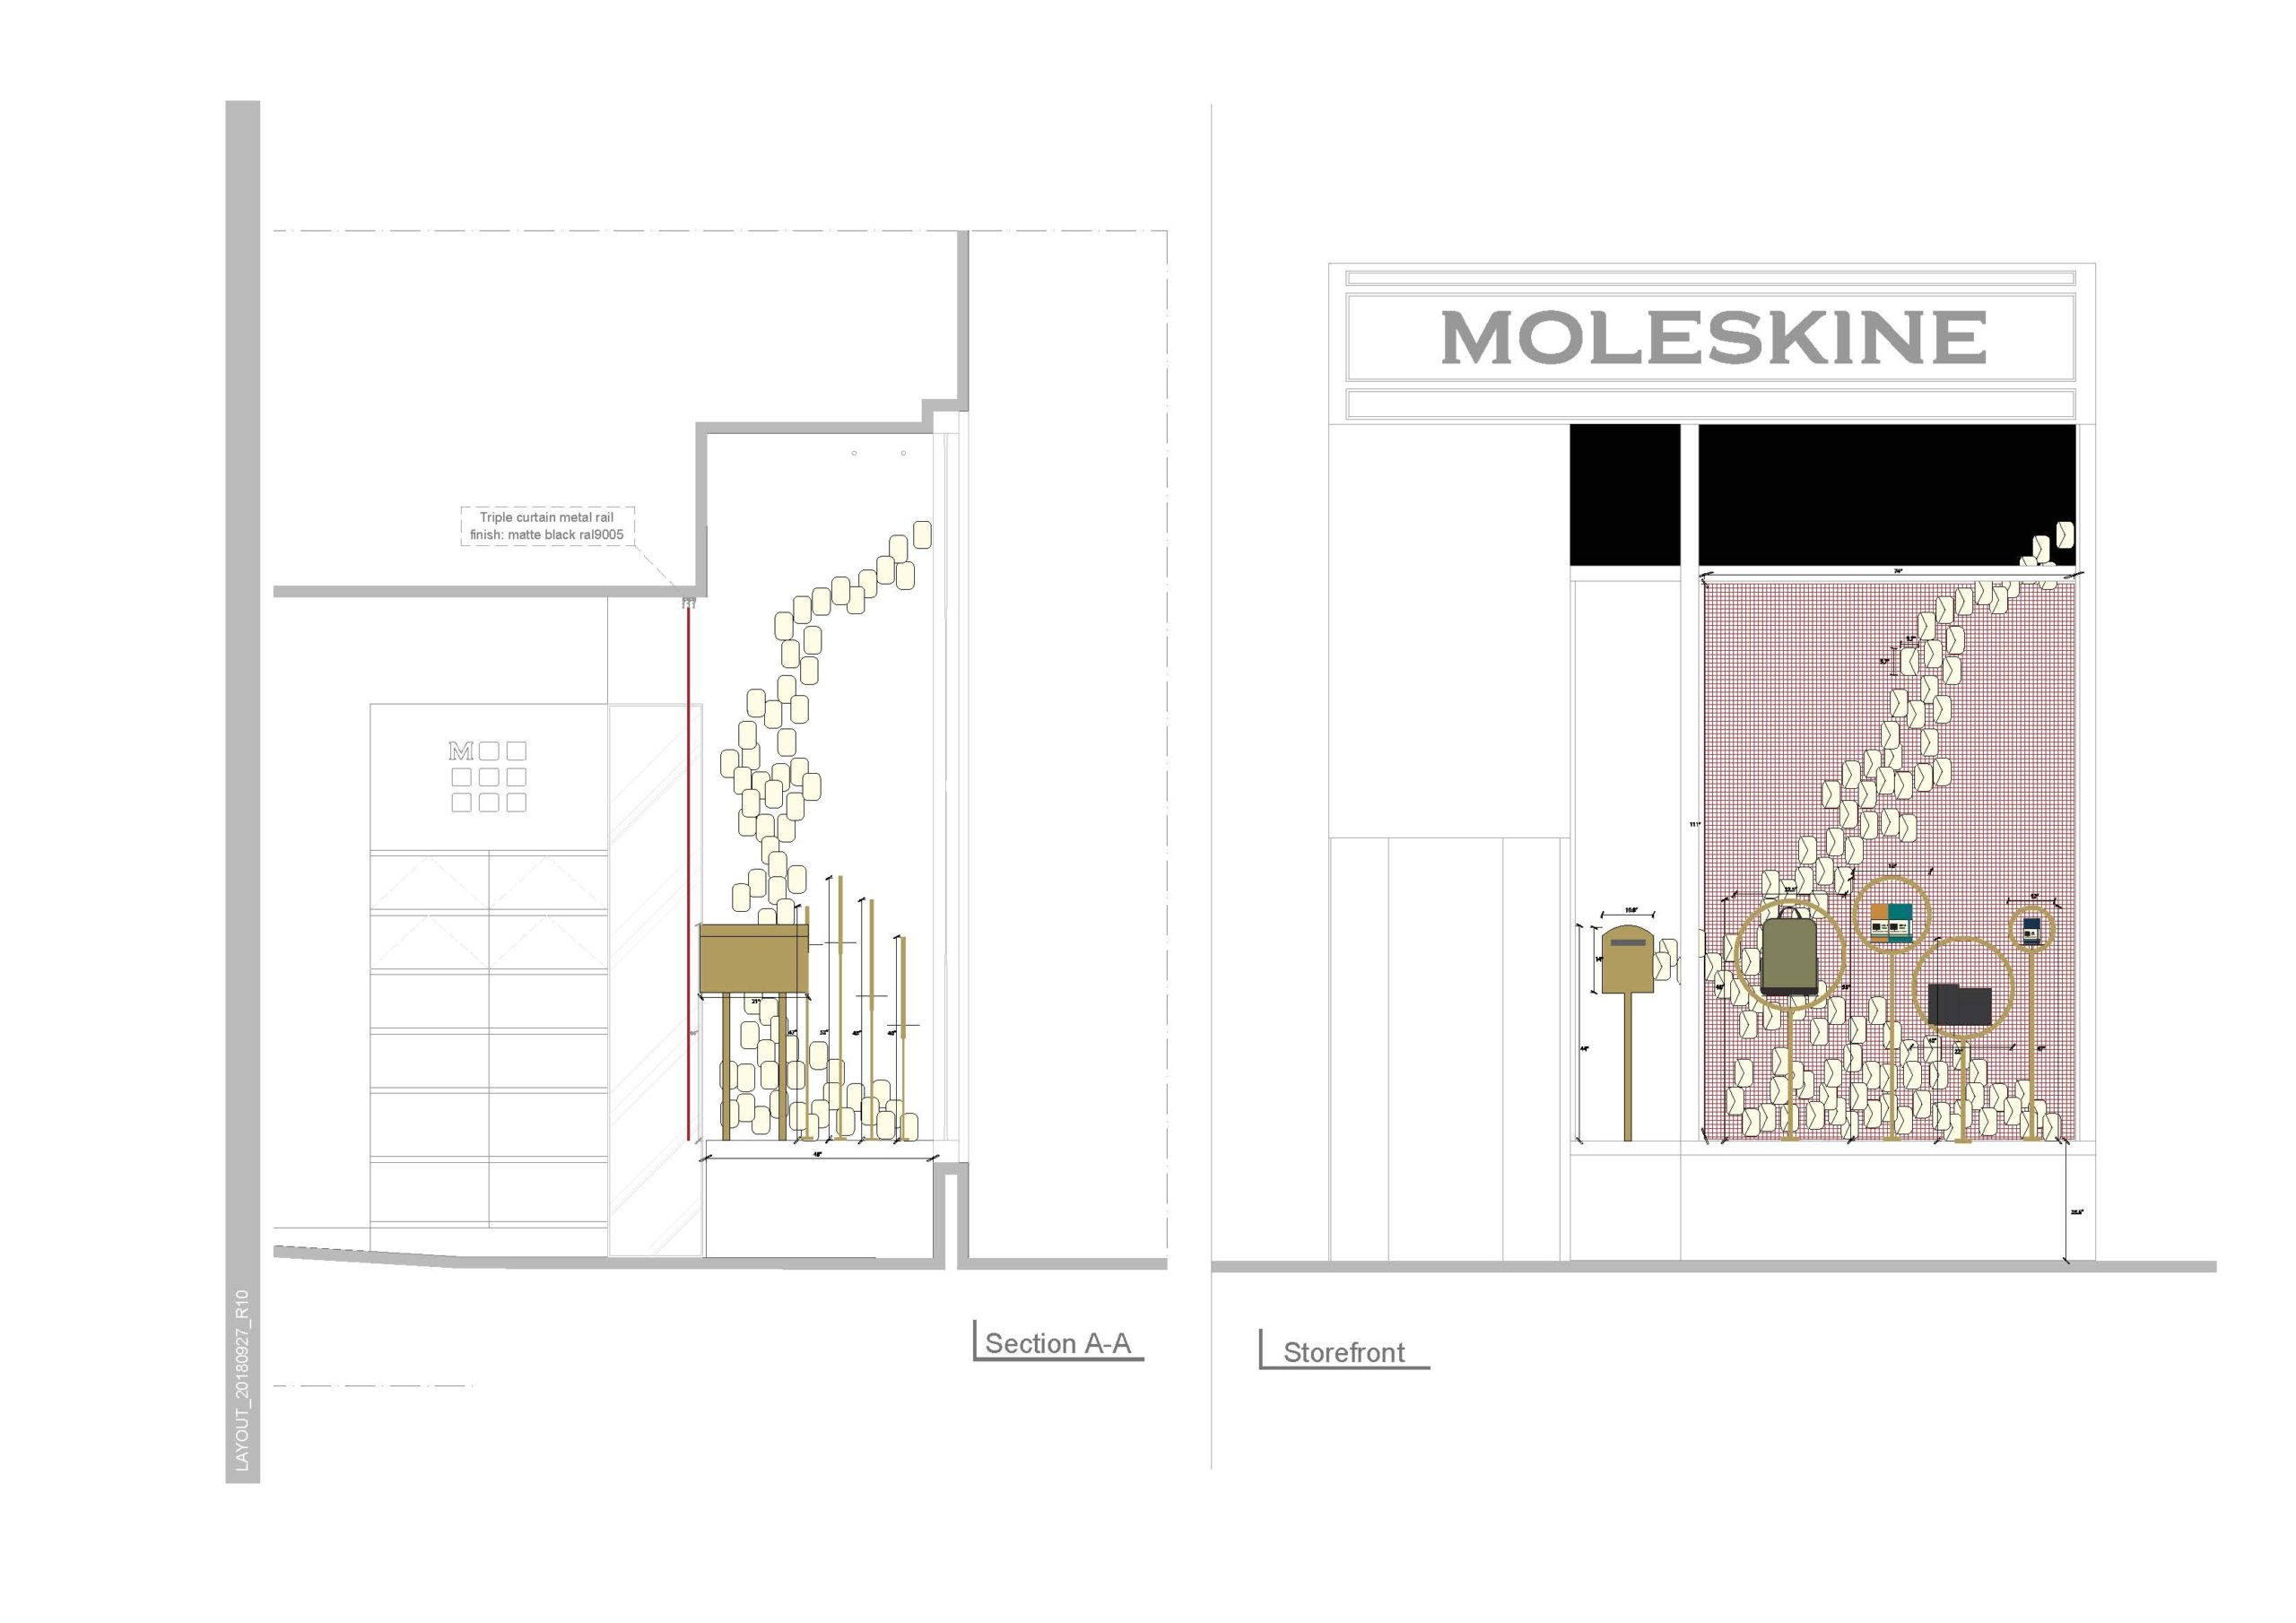 moleskine window display rendering